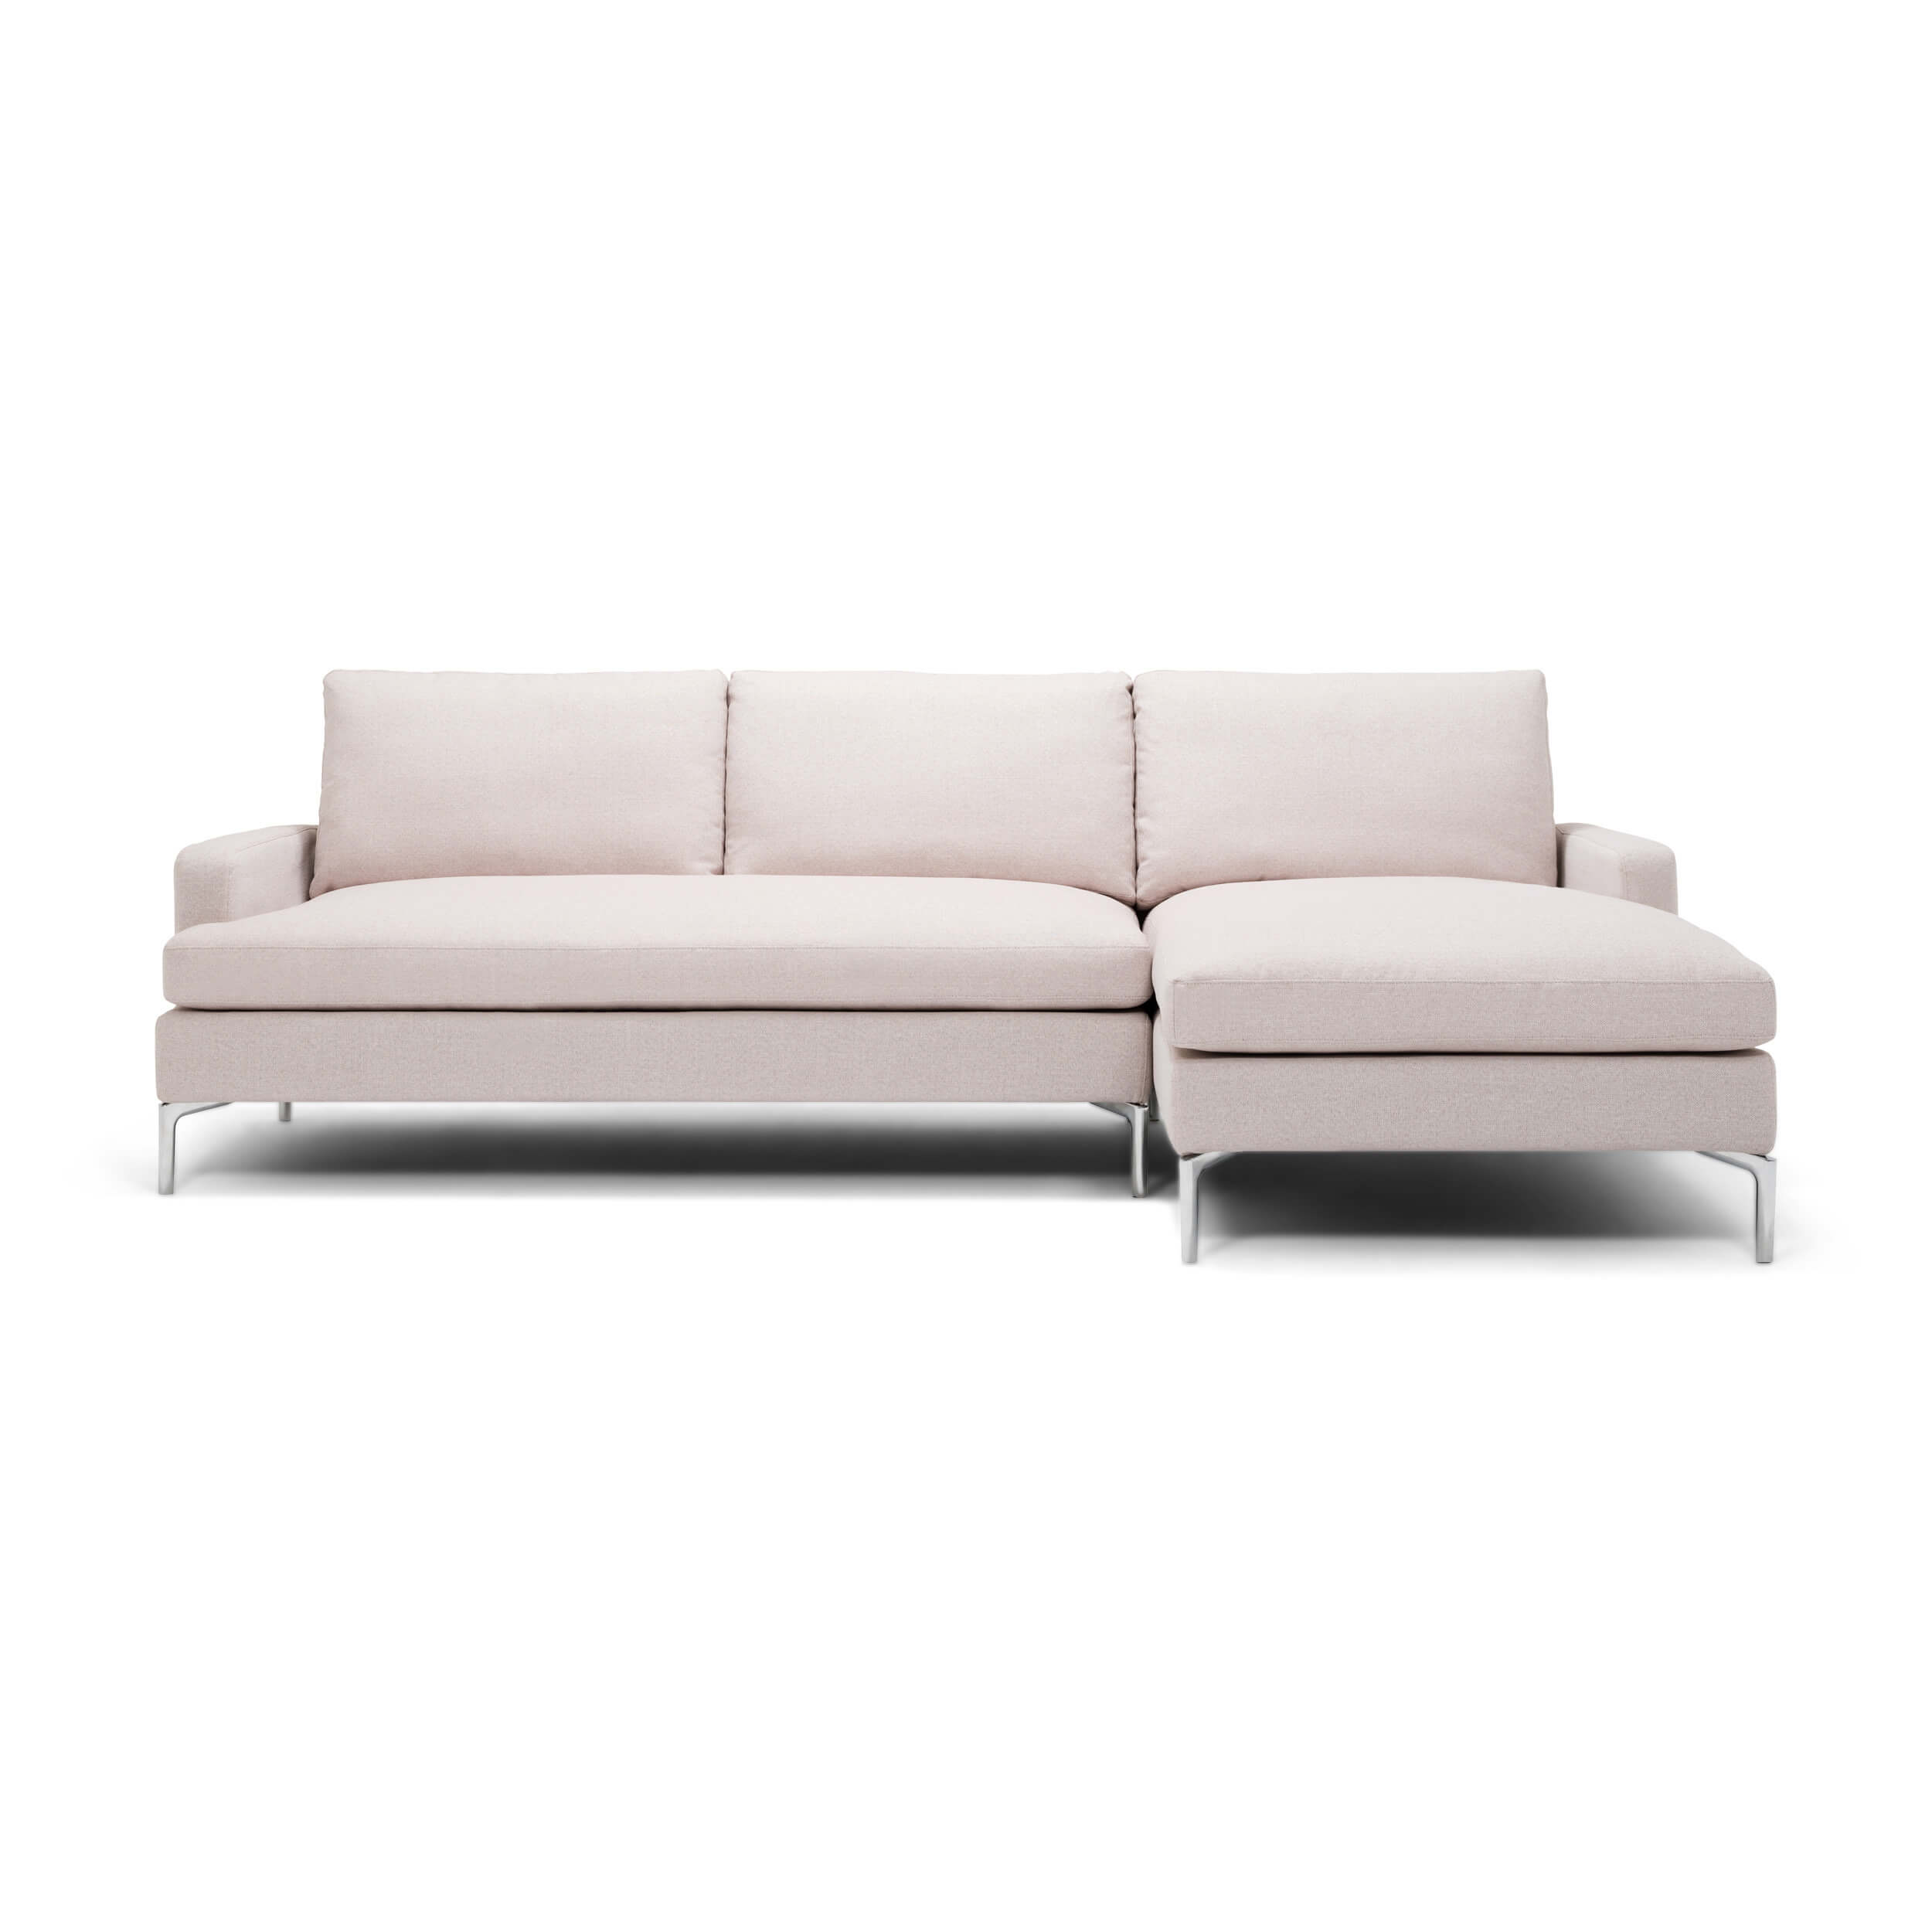 Eve Grand 2-piece Sectional Sofa With Chaise - Fabric